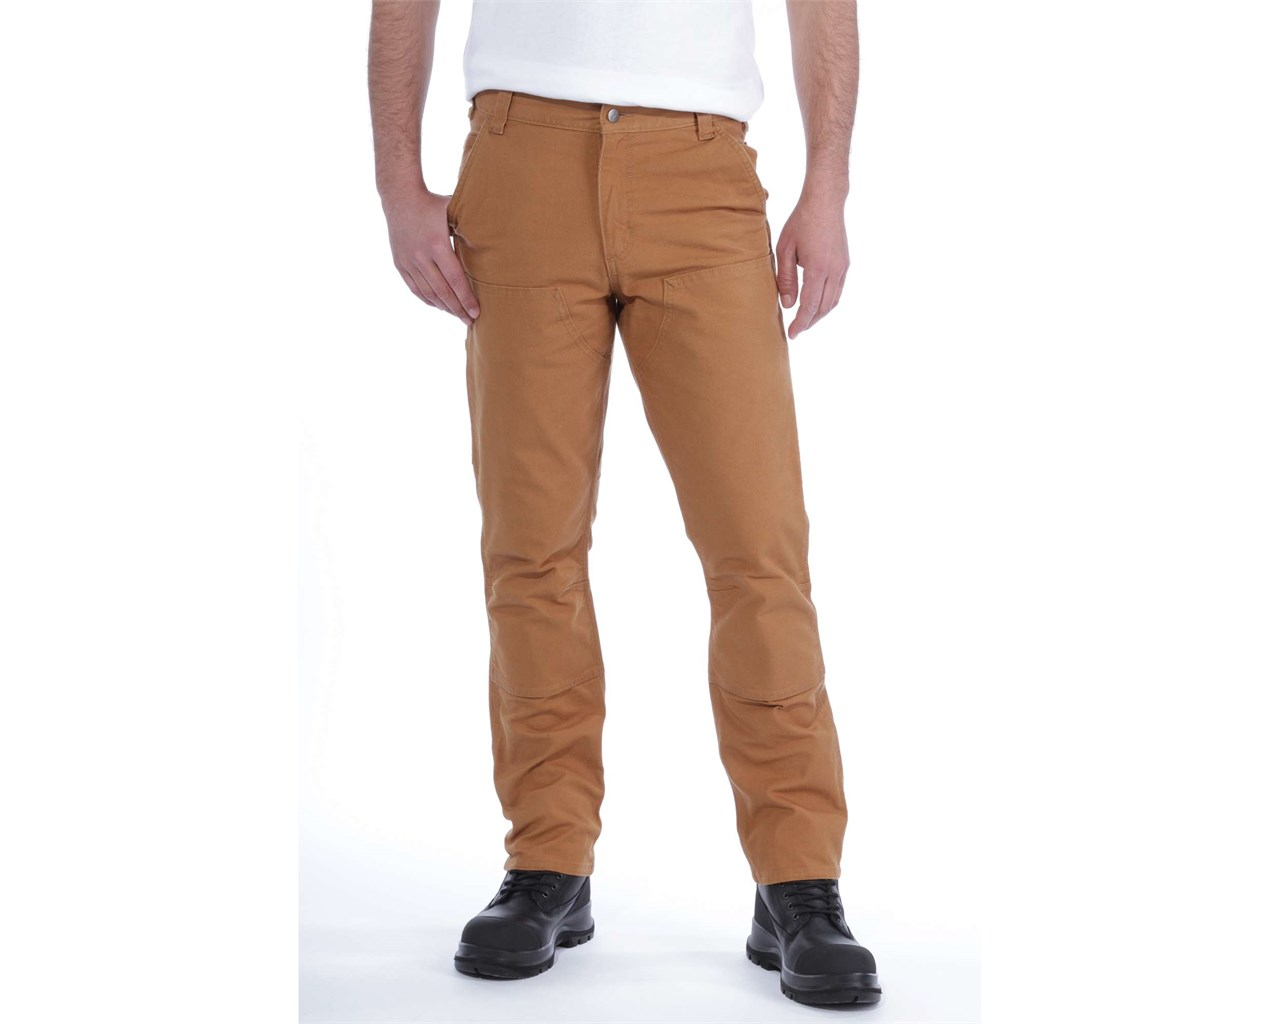 Carhartt Stretch Duck Double Front Trousers, Carhartt Brown, W32/L32